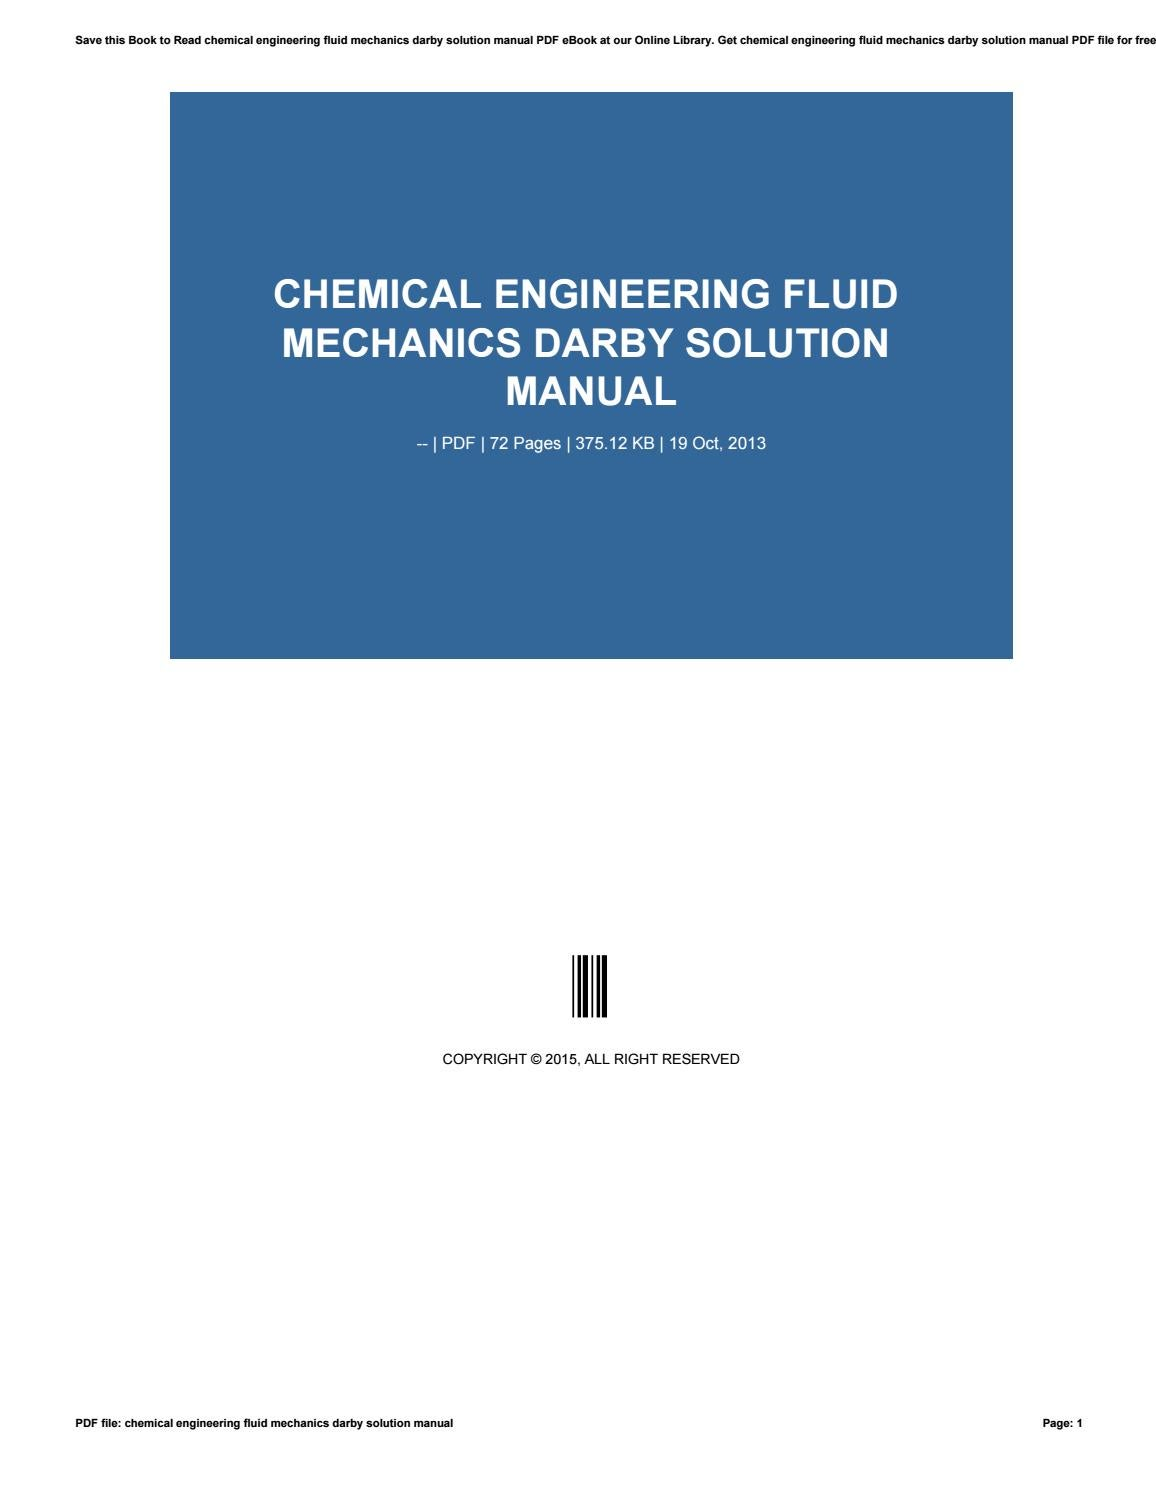 Chemical engineering fluid mechanics darby solution manual by ax80mail424 -  issuu